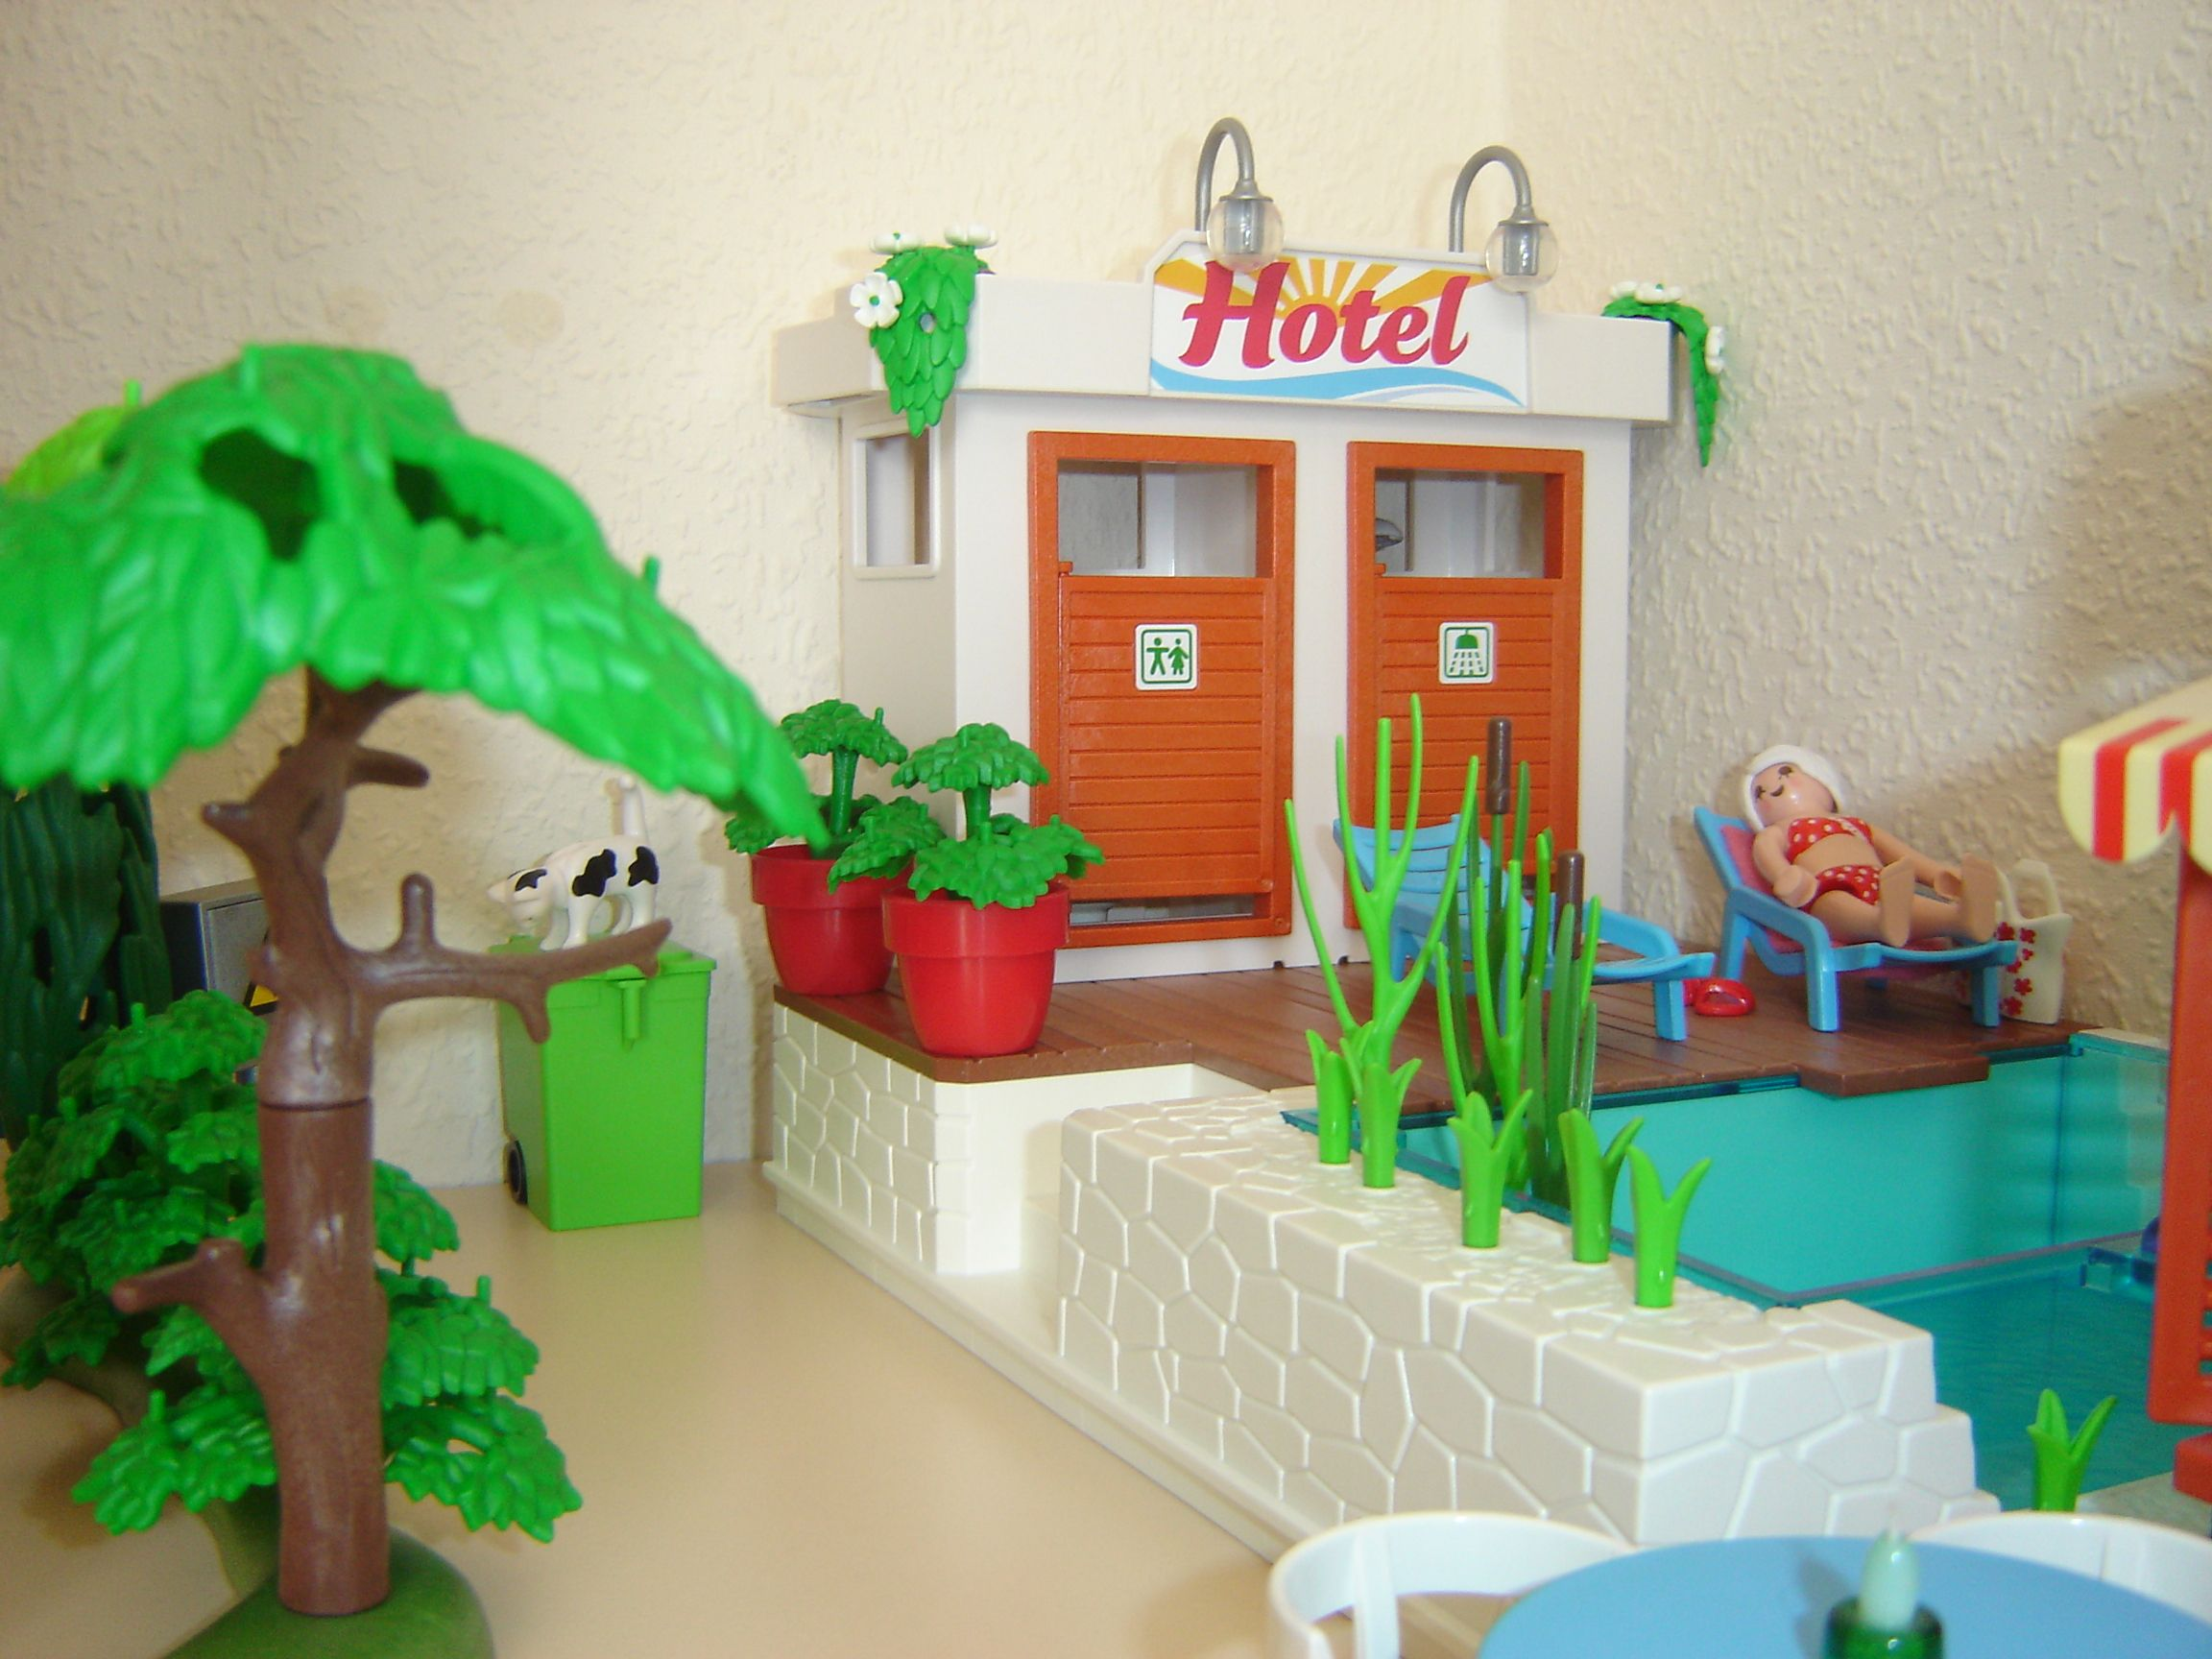 Hotel grounds swimming pool changing rooms playmobil - Playmobil swimming pool best price ...